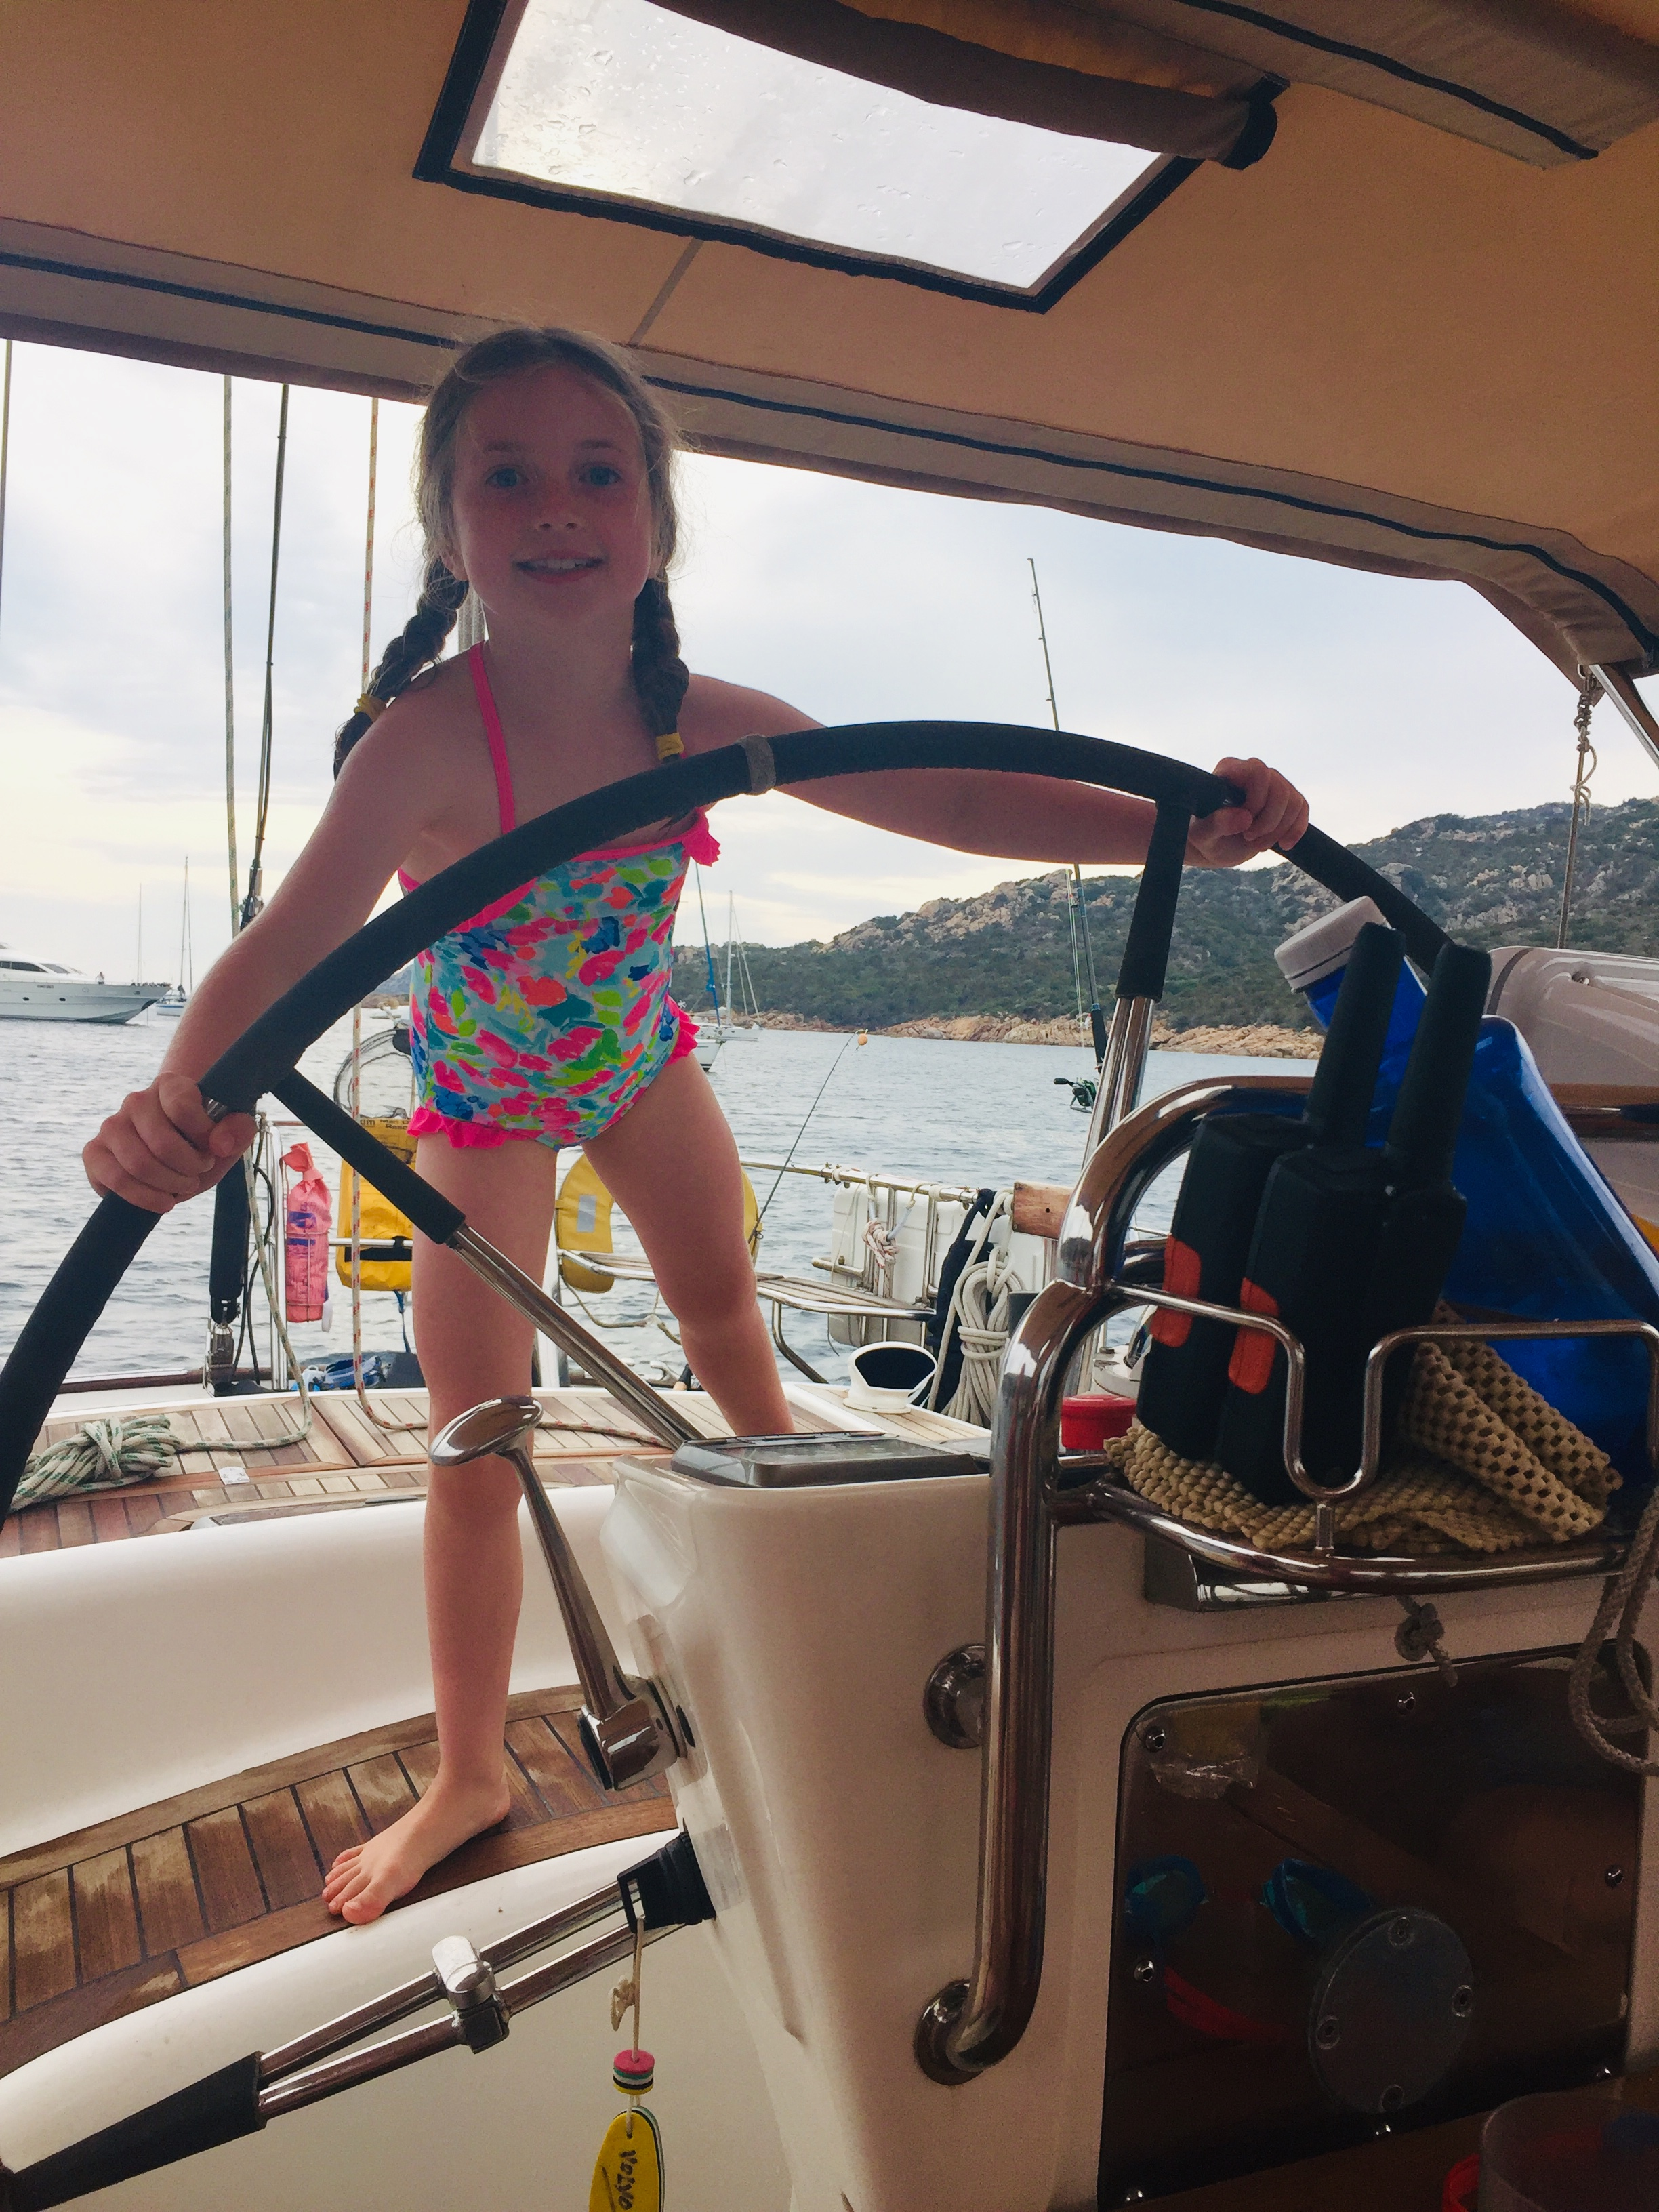 Arabella at the Helm